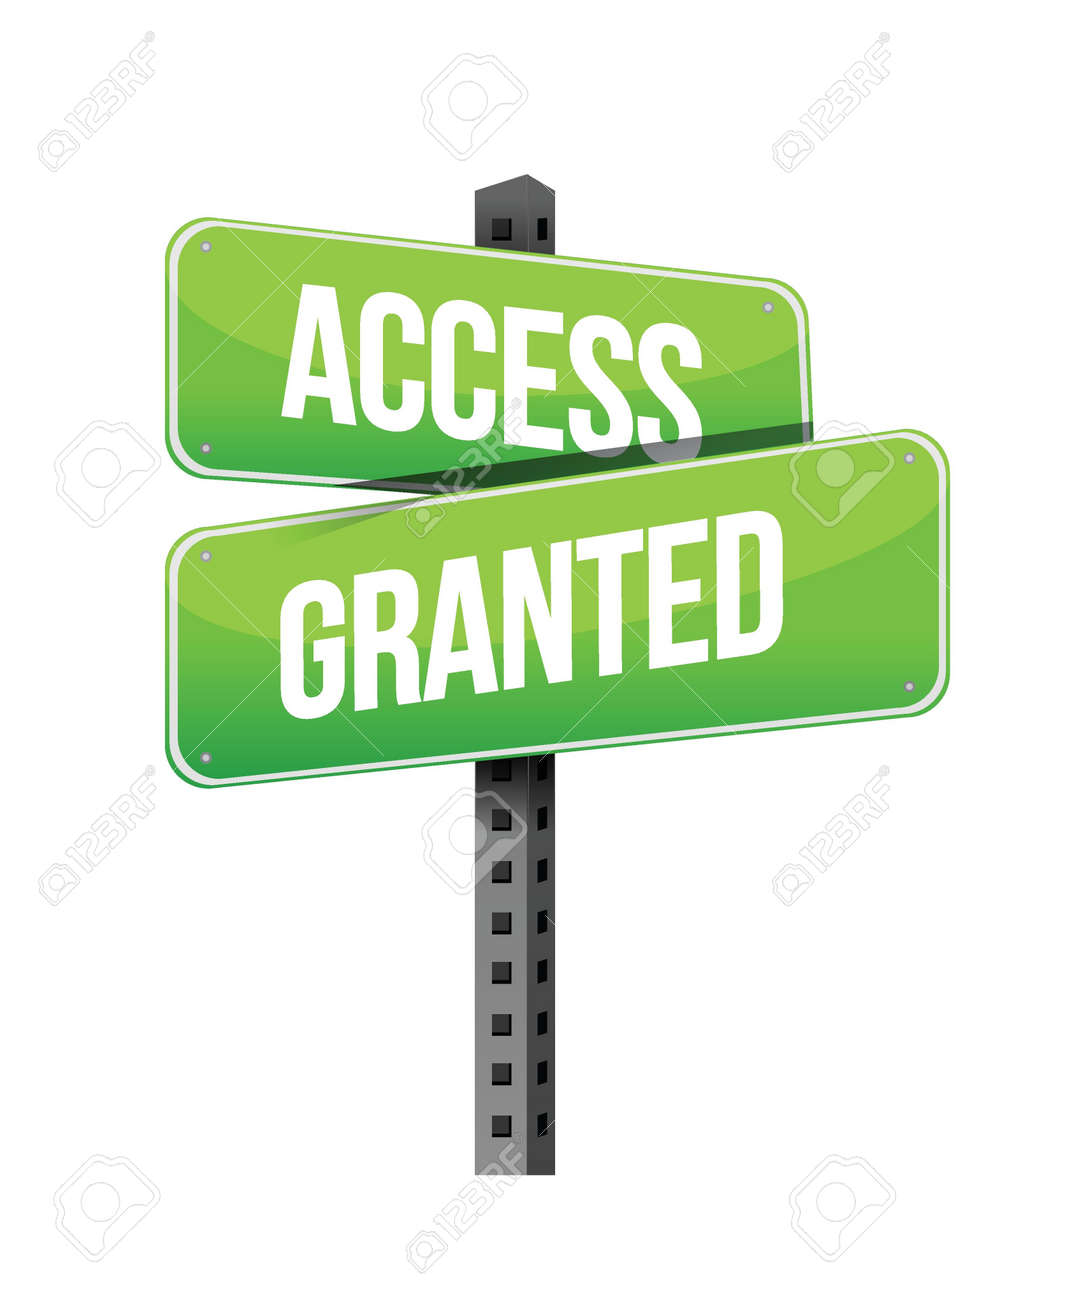 Access Granted road sign illustration design over a white background Stock Vector - 19706185